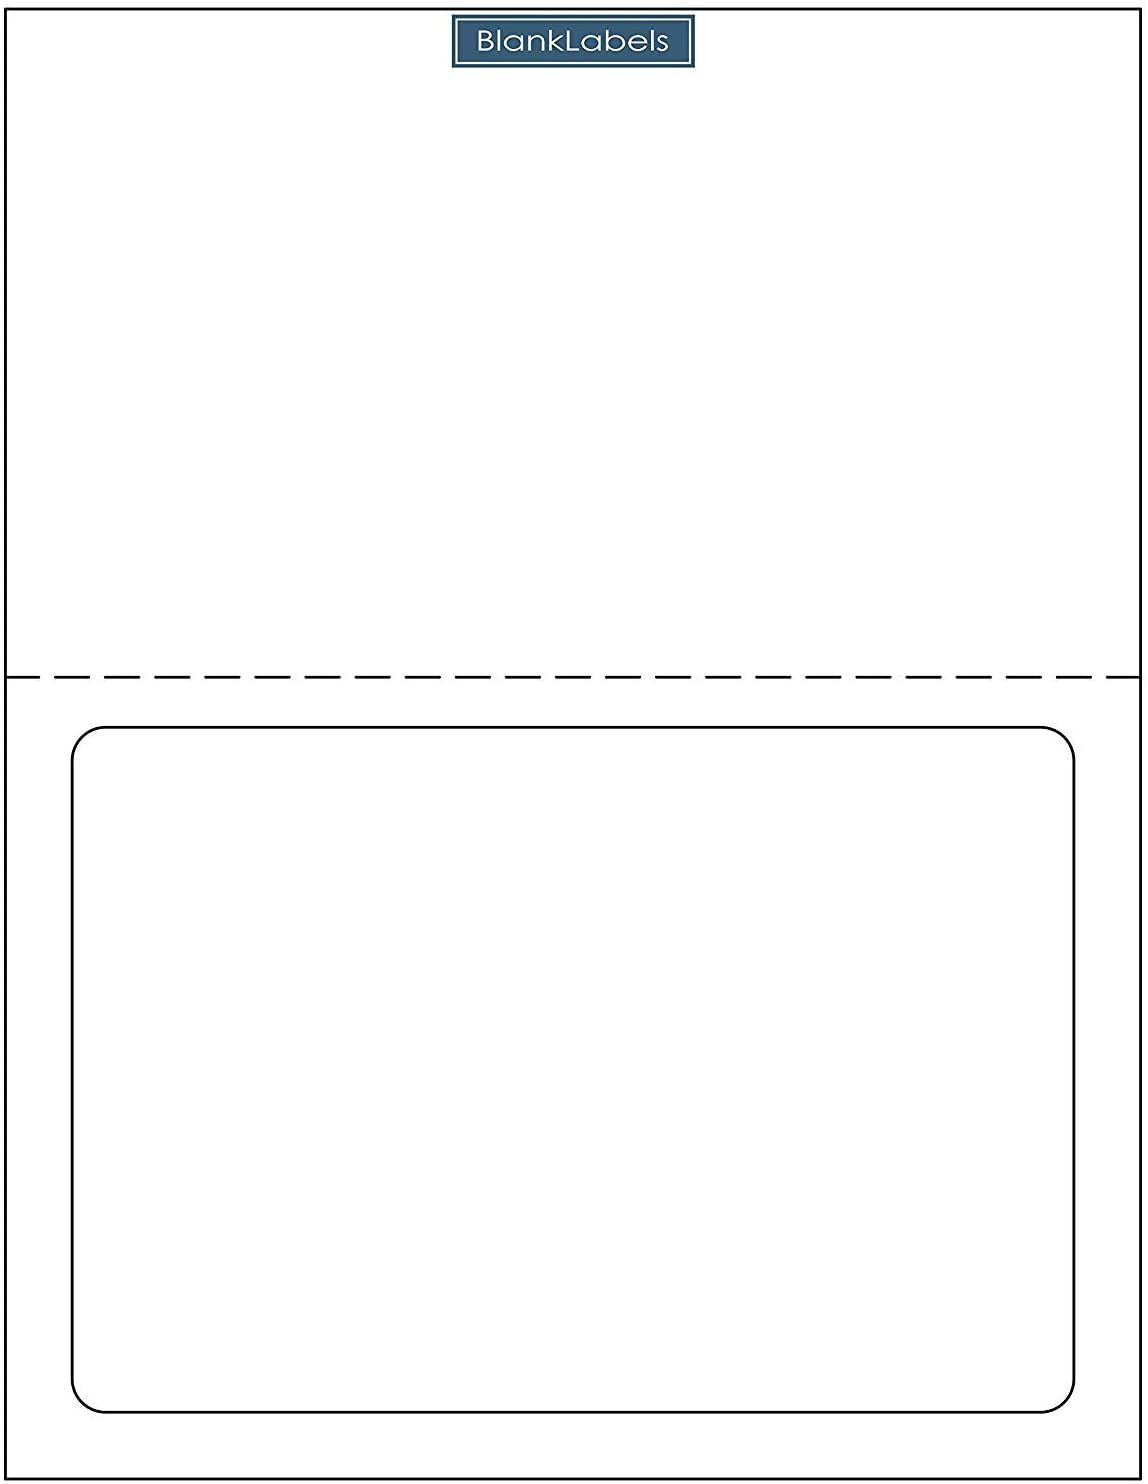 004 Impressive Blank Shipping Label Template High Def  Word Free PrintableFull